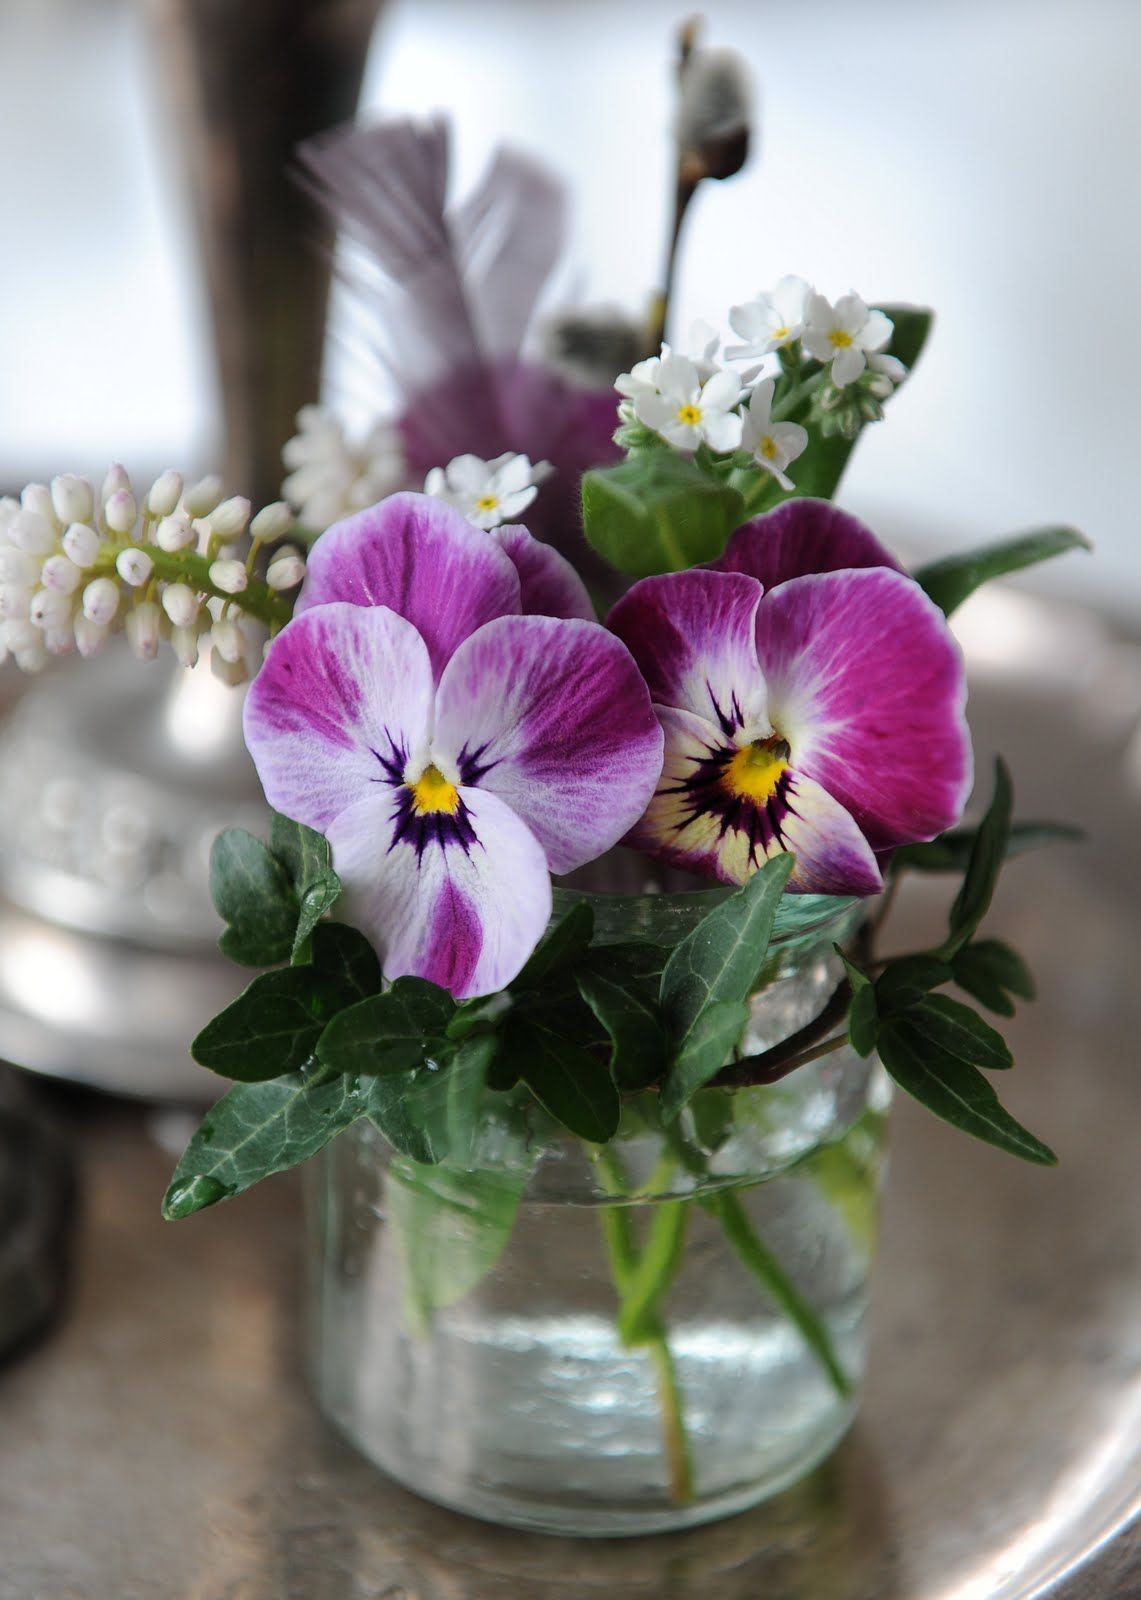 Pansies in small glass vase